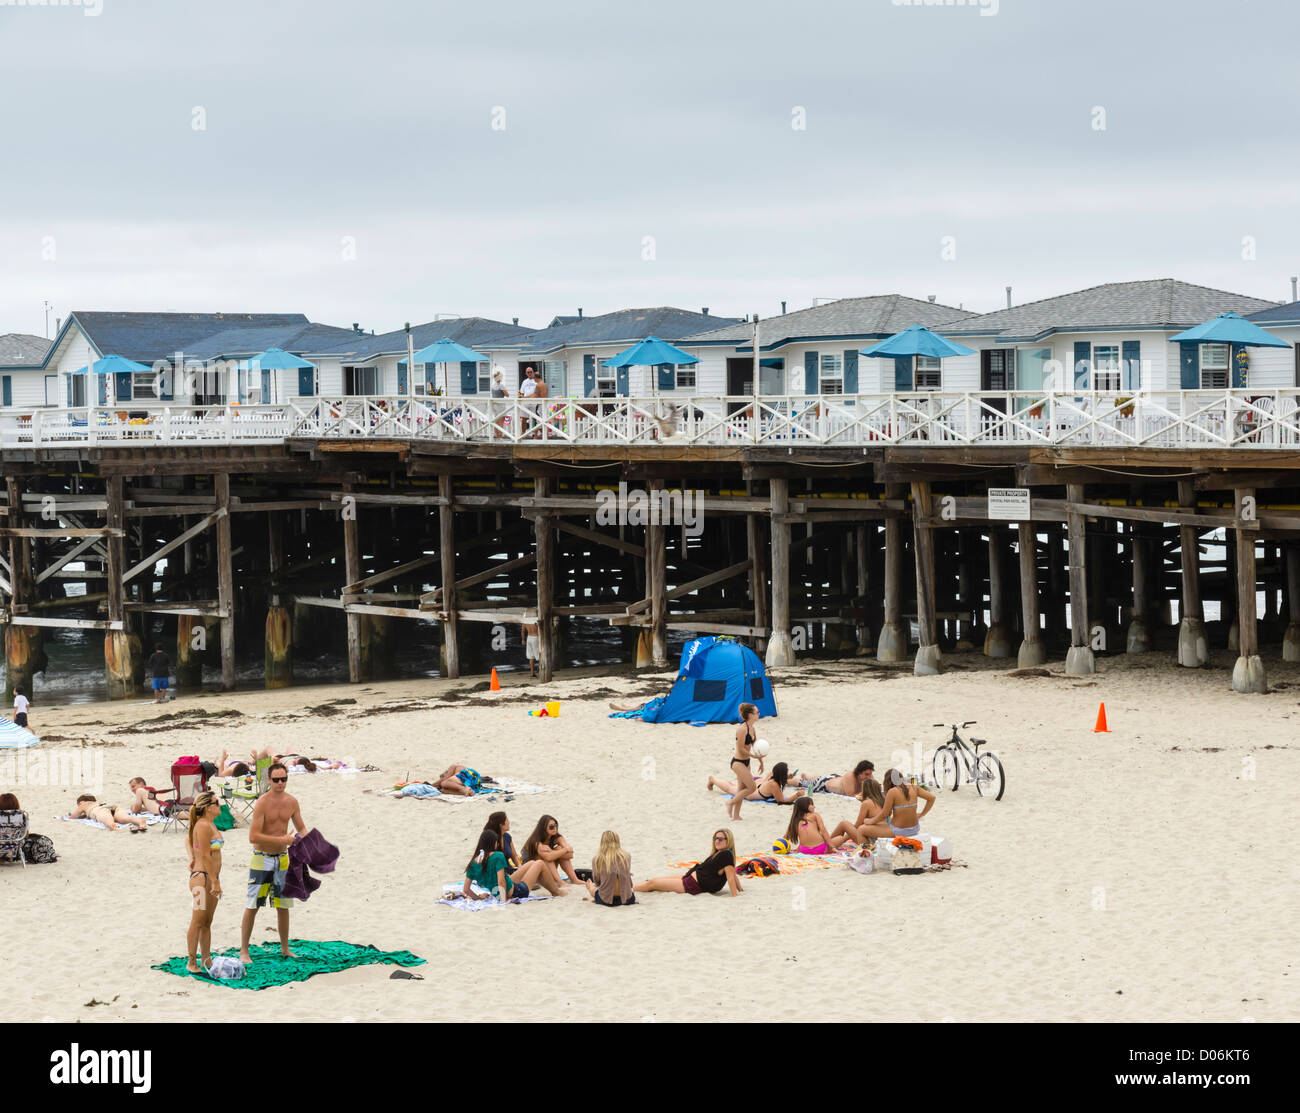 Pacific Beach, San Diego - the Crystal Pier Hotel with individual houses built in the pier. - Stock Image